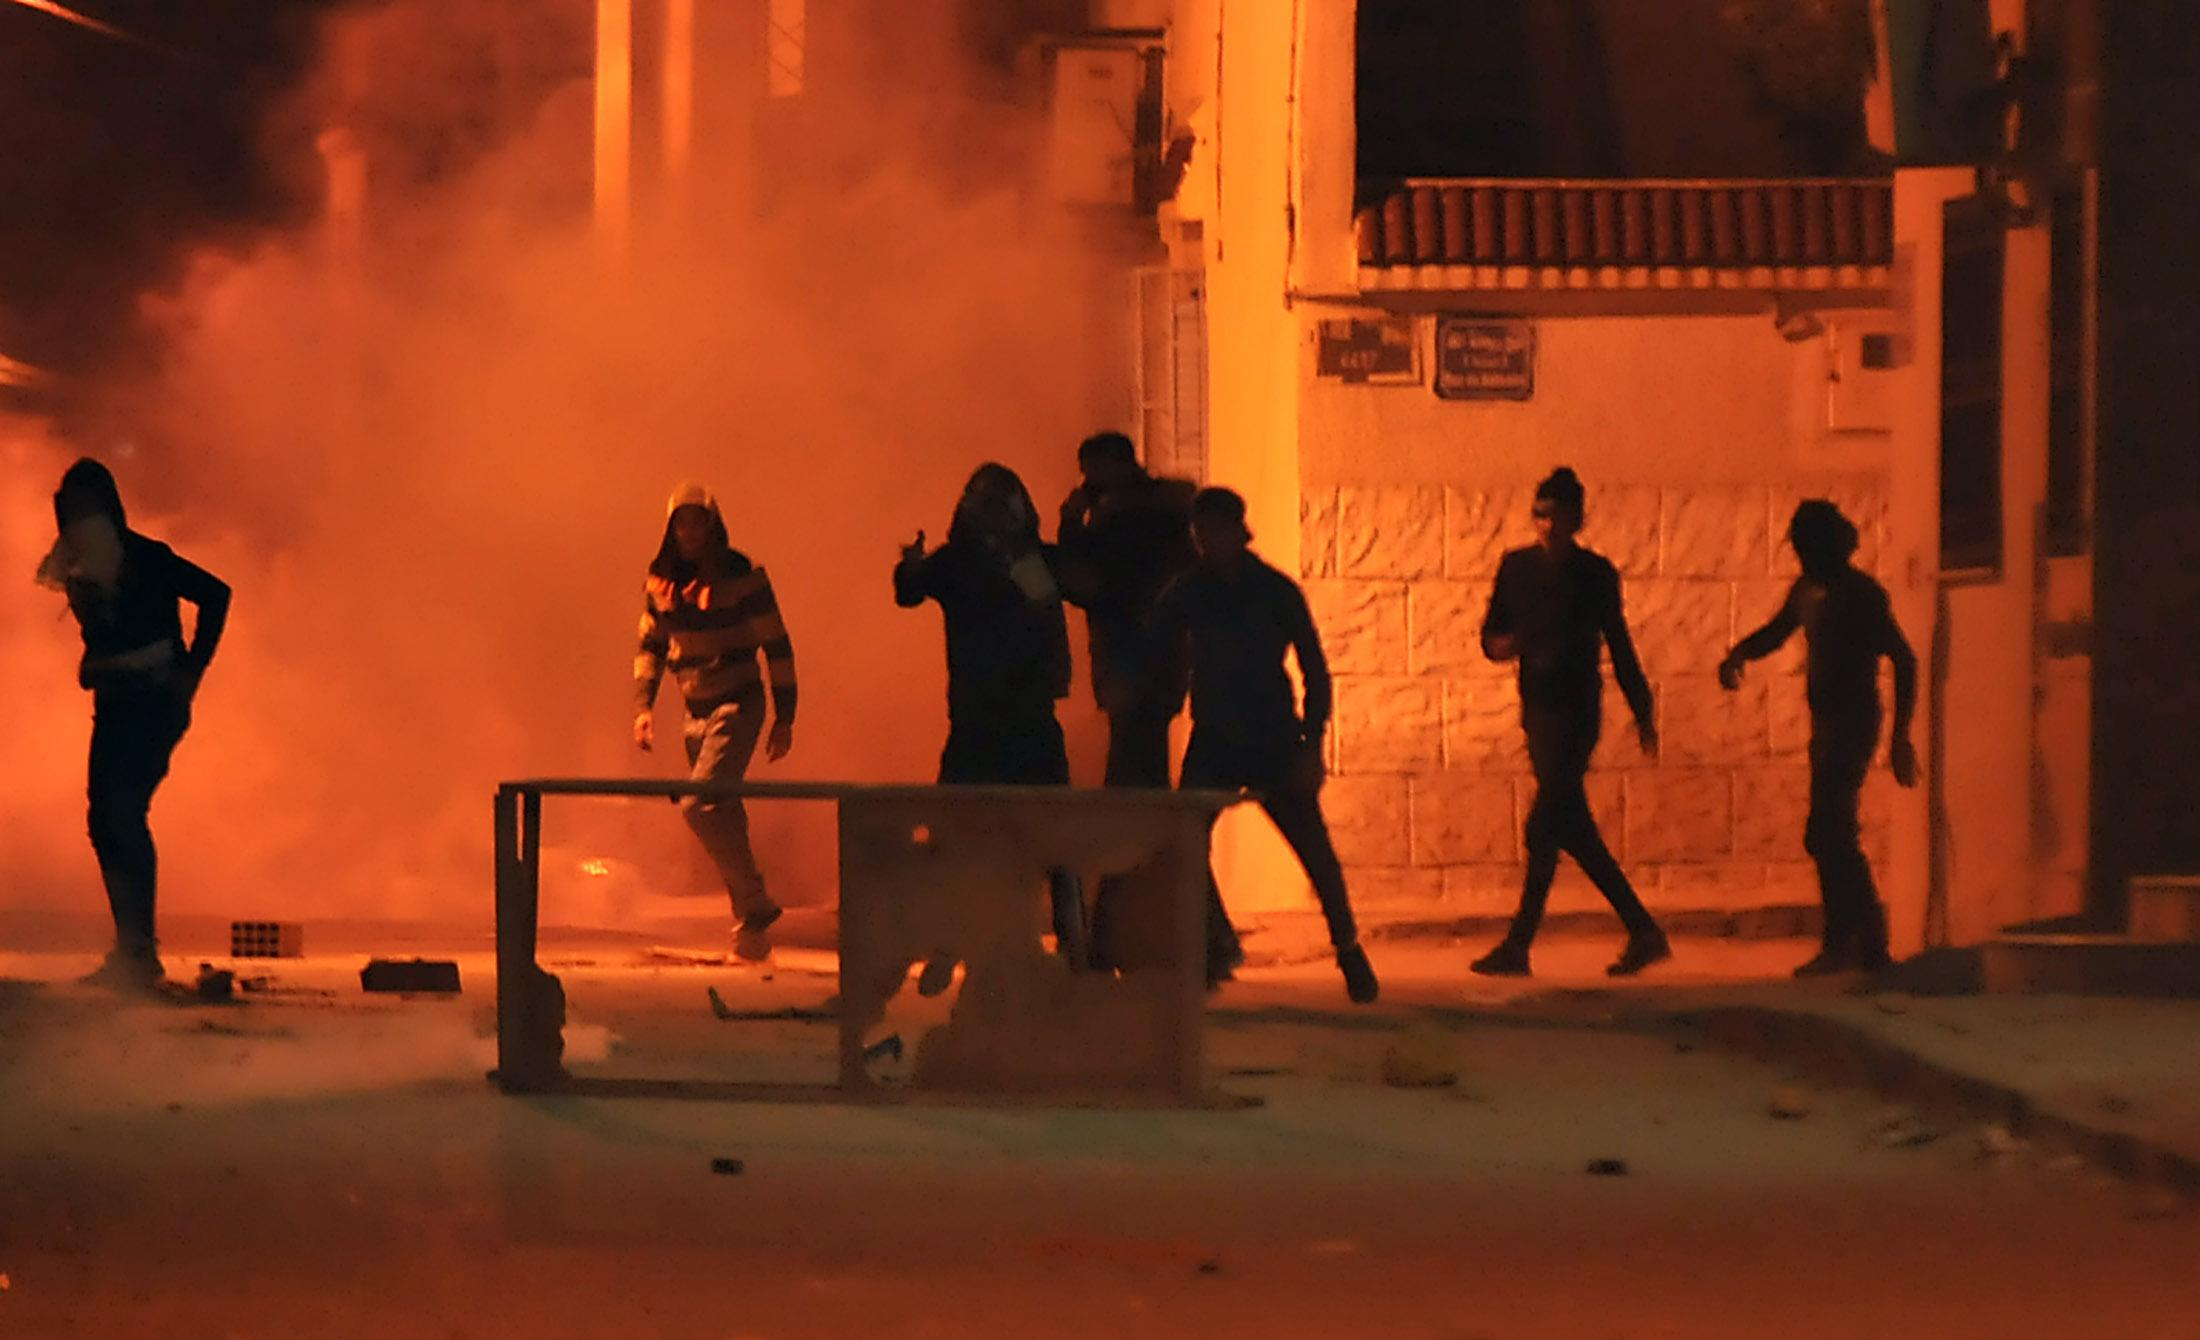 <p>Tunisian protestors throw stones towards security forces in Tunis' Djebel Lahmer district early on Jan.10, 2018 after price hikes ignited protests in the North African country. (Photo: Sofiene Hamdaoui/AFP/Getty Images) </p>